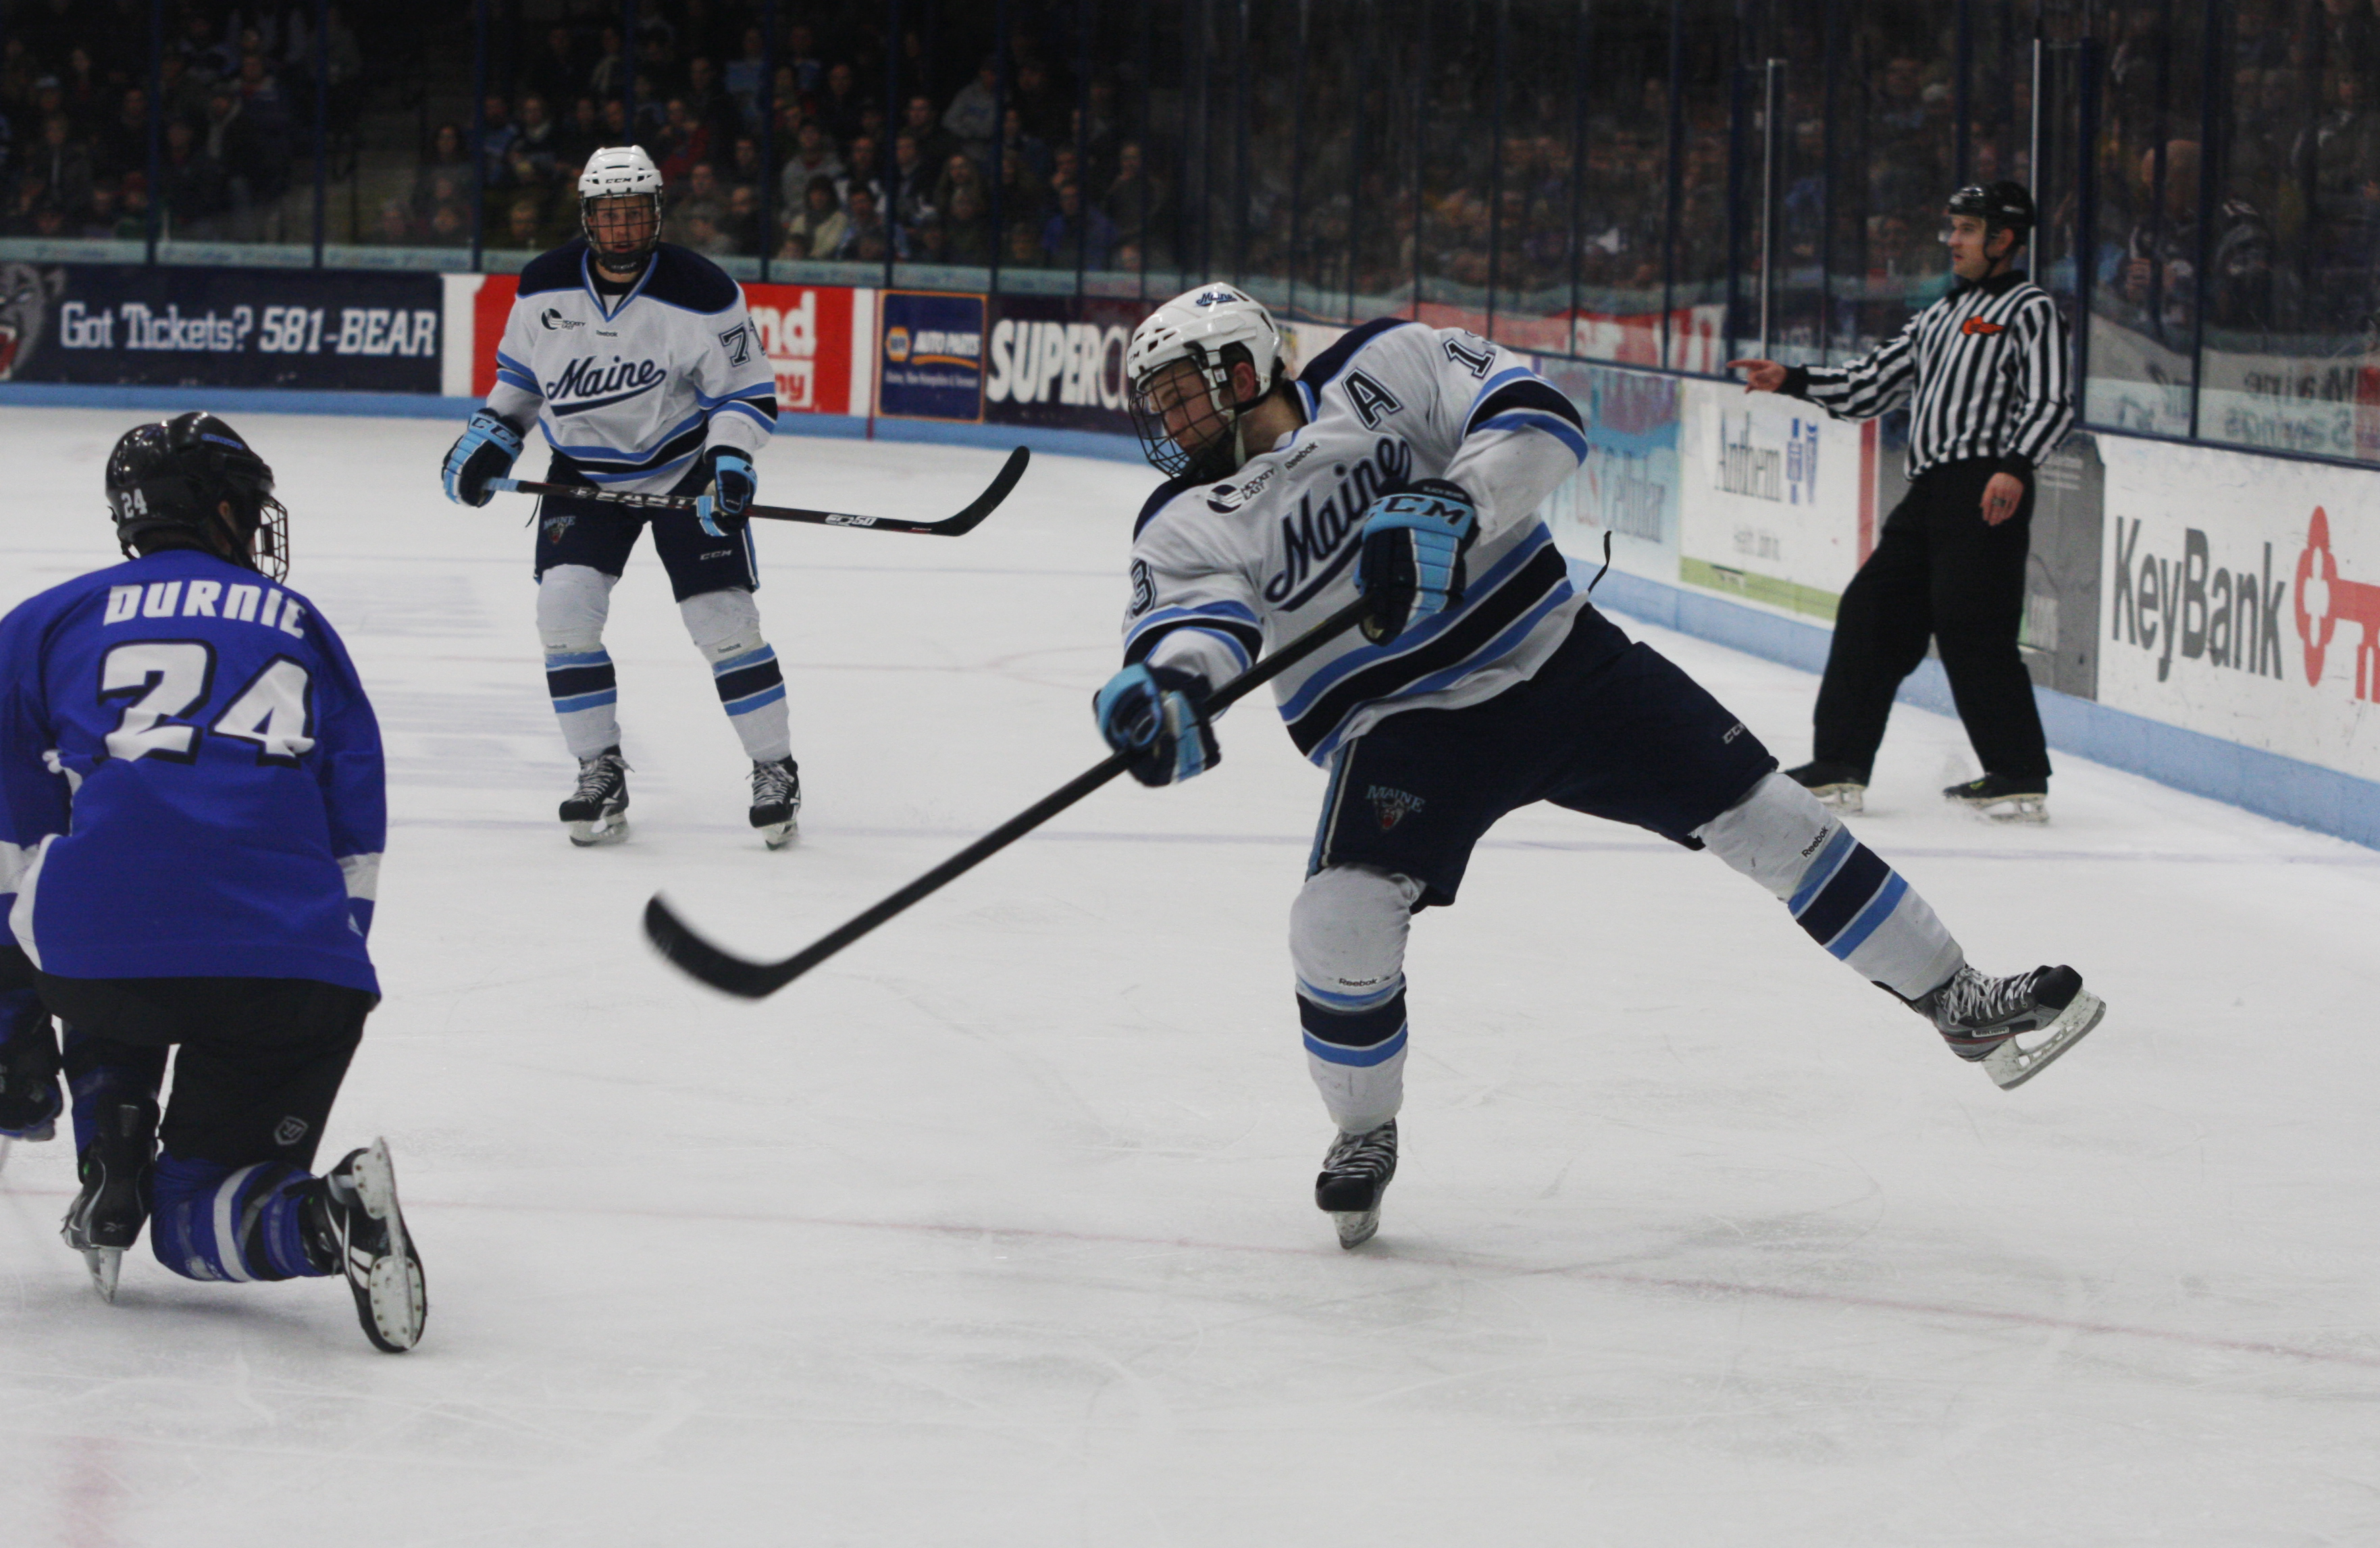 Maine's Abbott named Hockey East Player of Year, Hobey Baker finalist